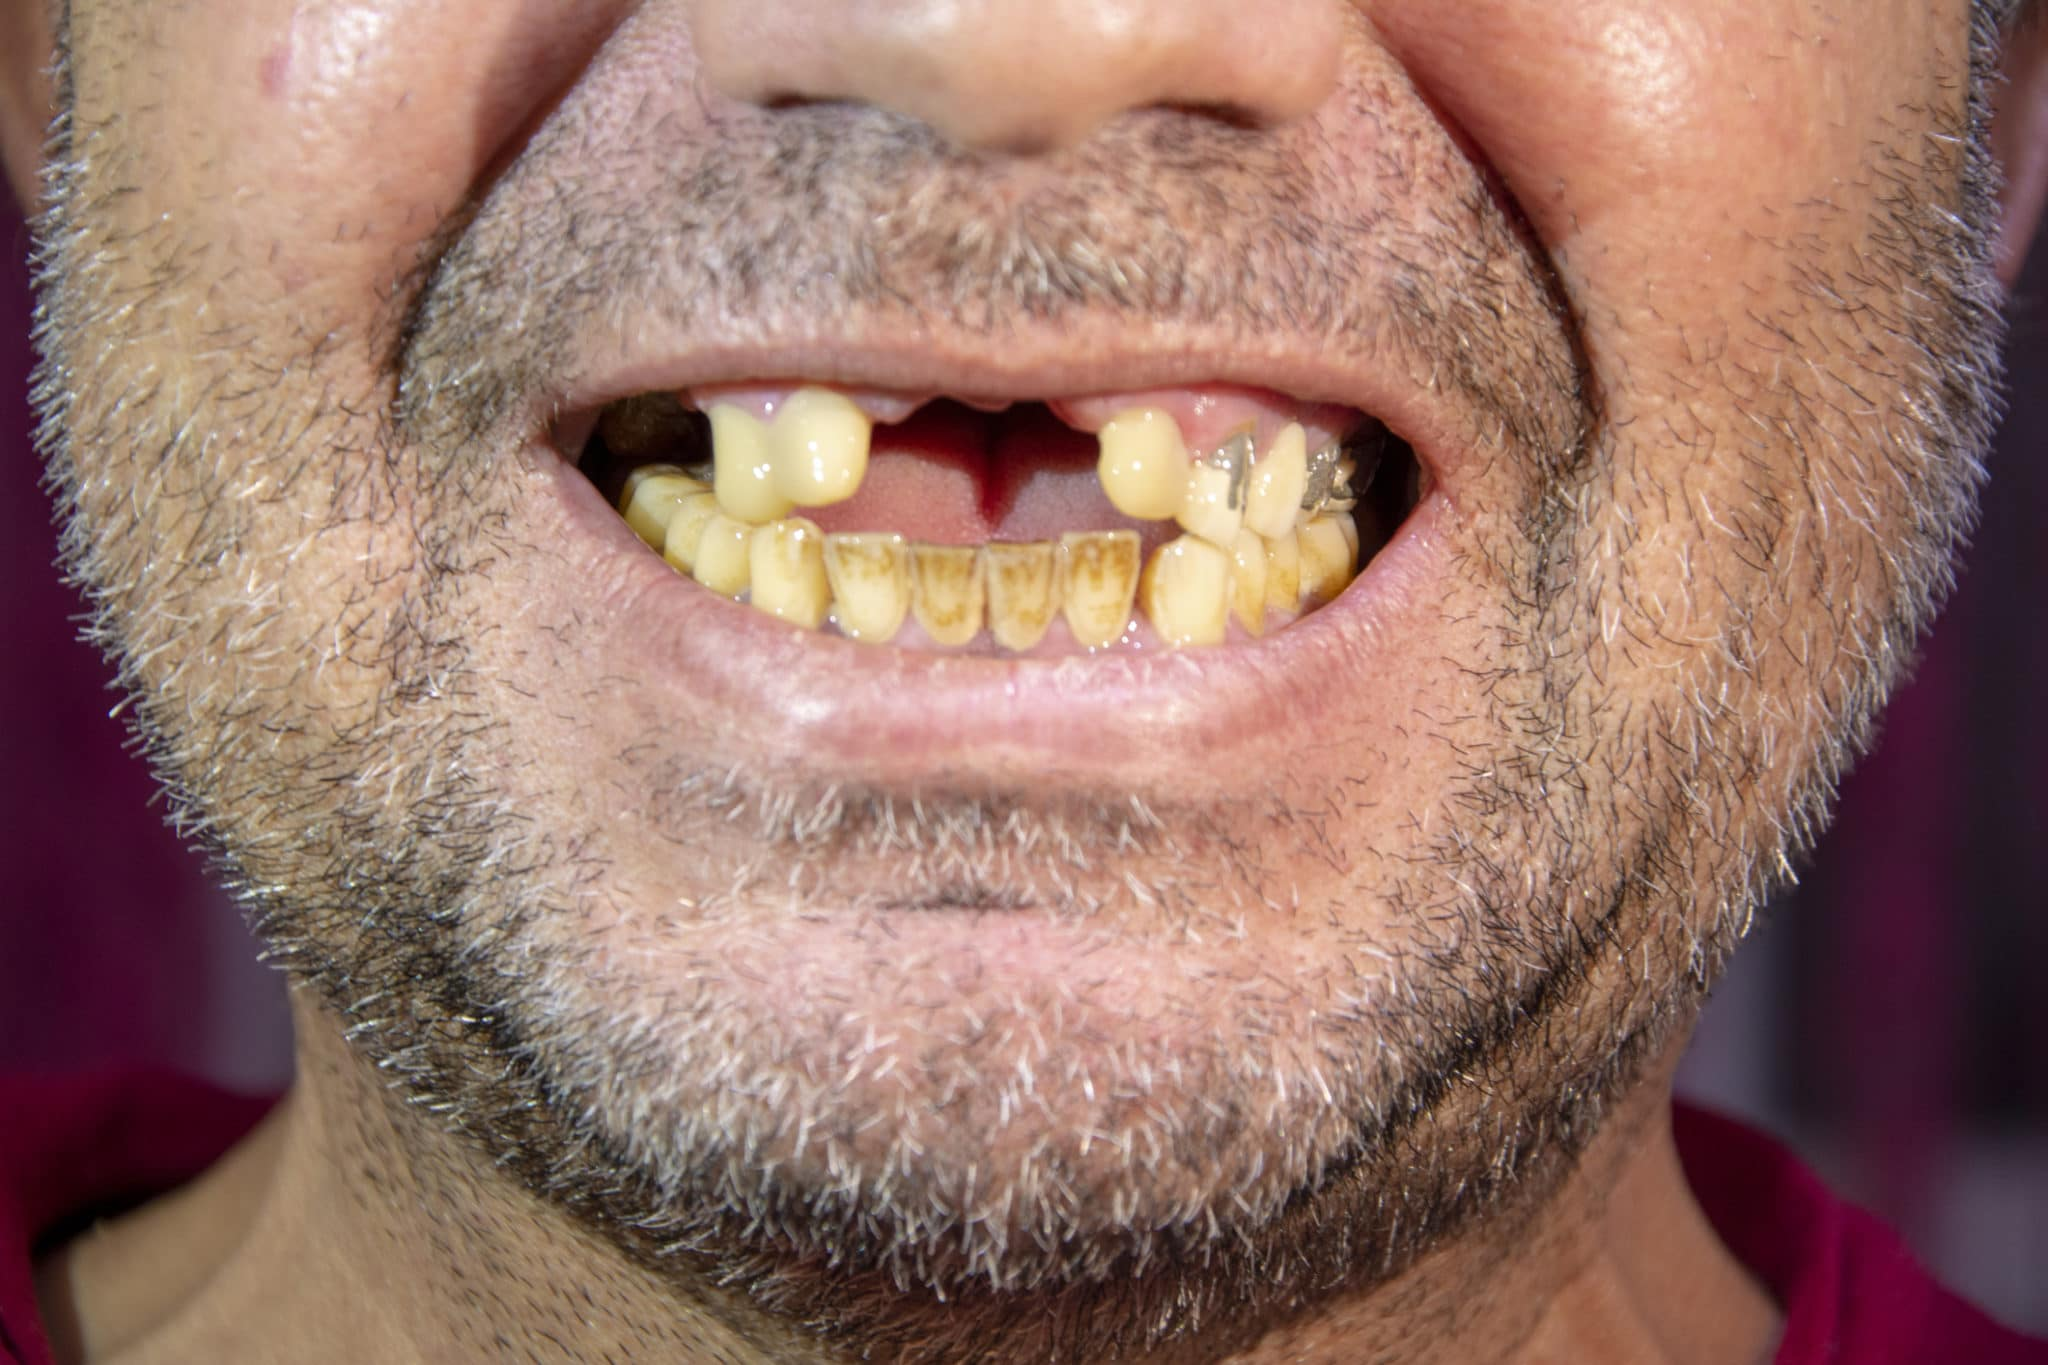 Close-up of toothless man laughing with yellowed teeth